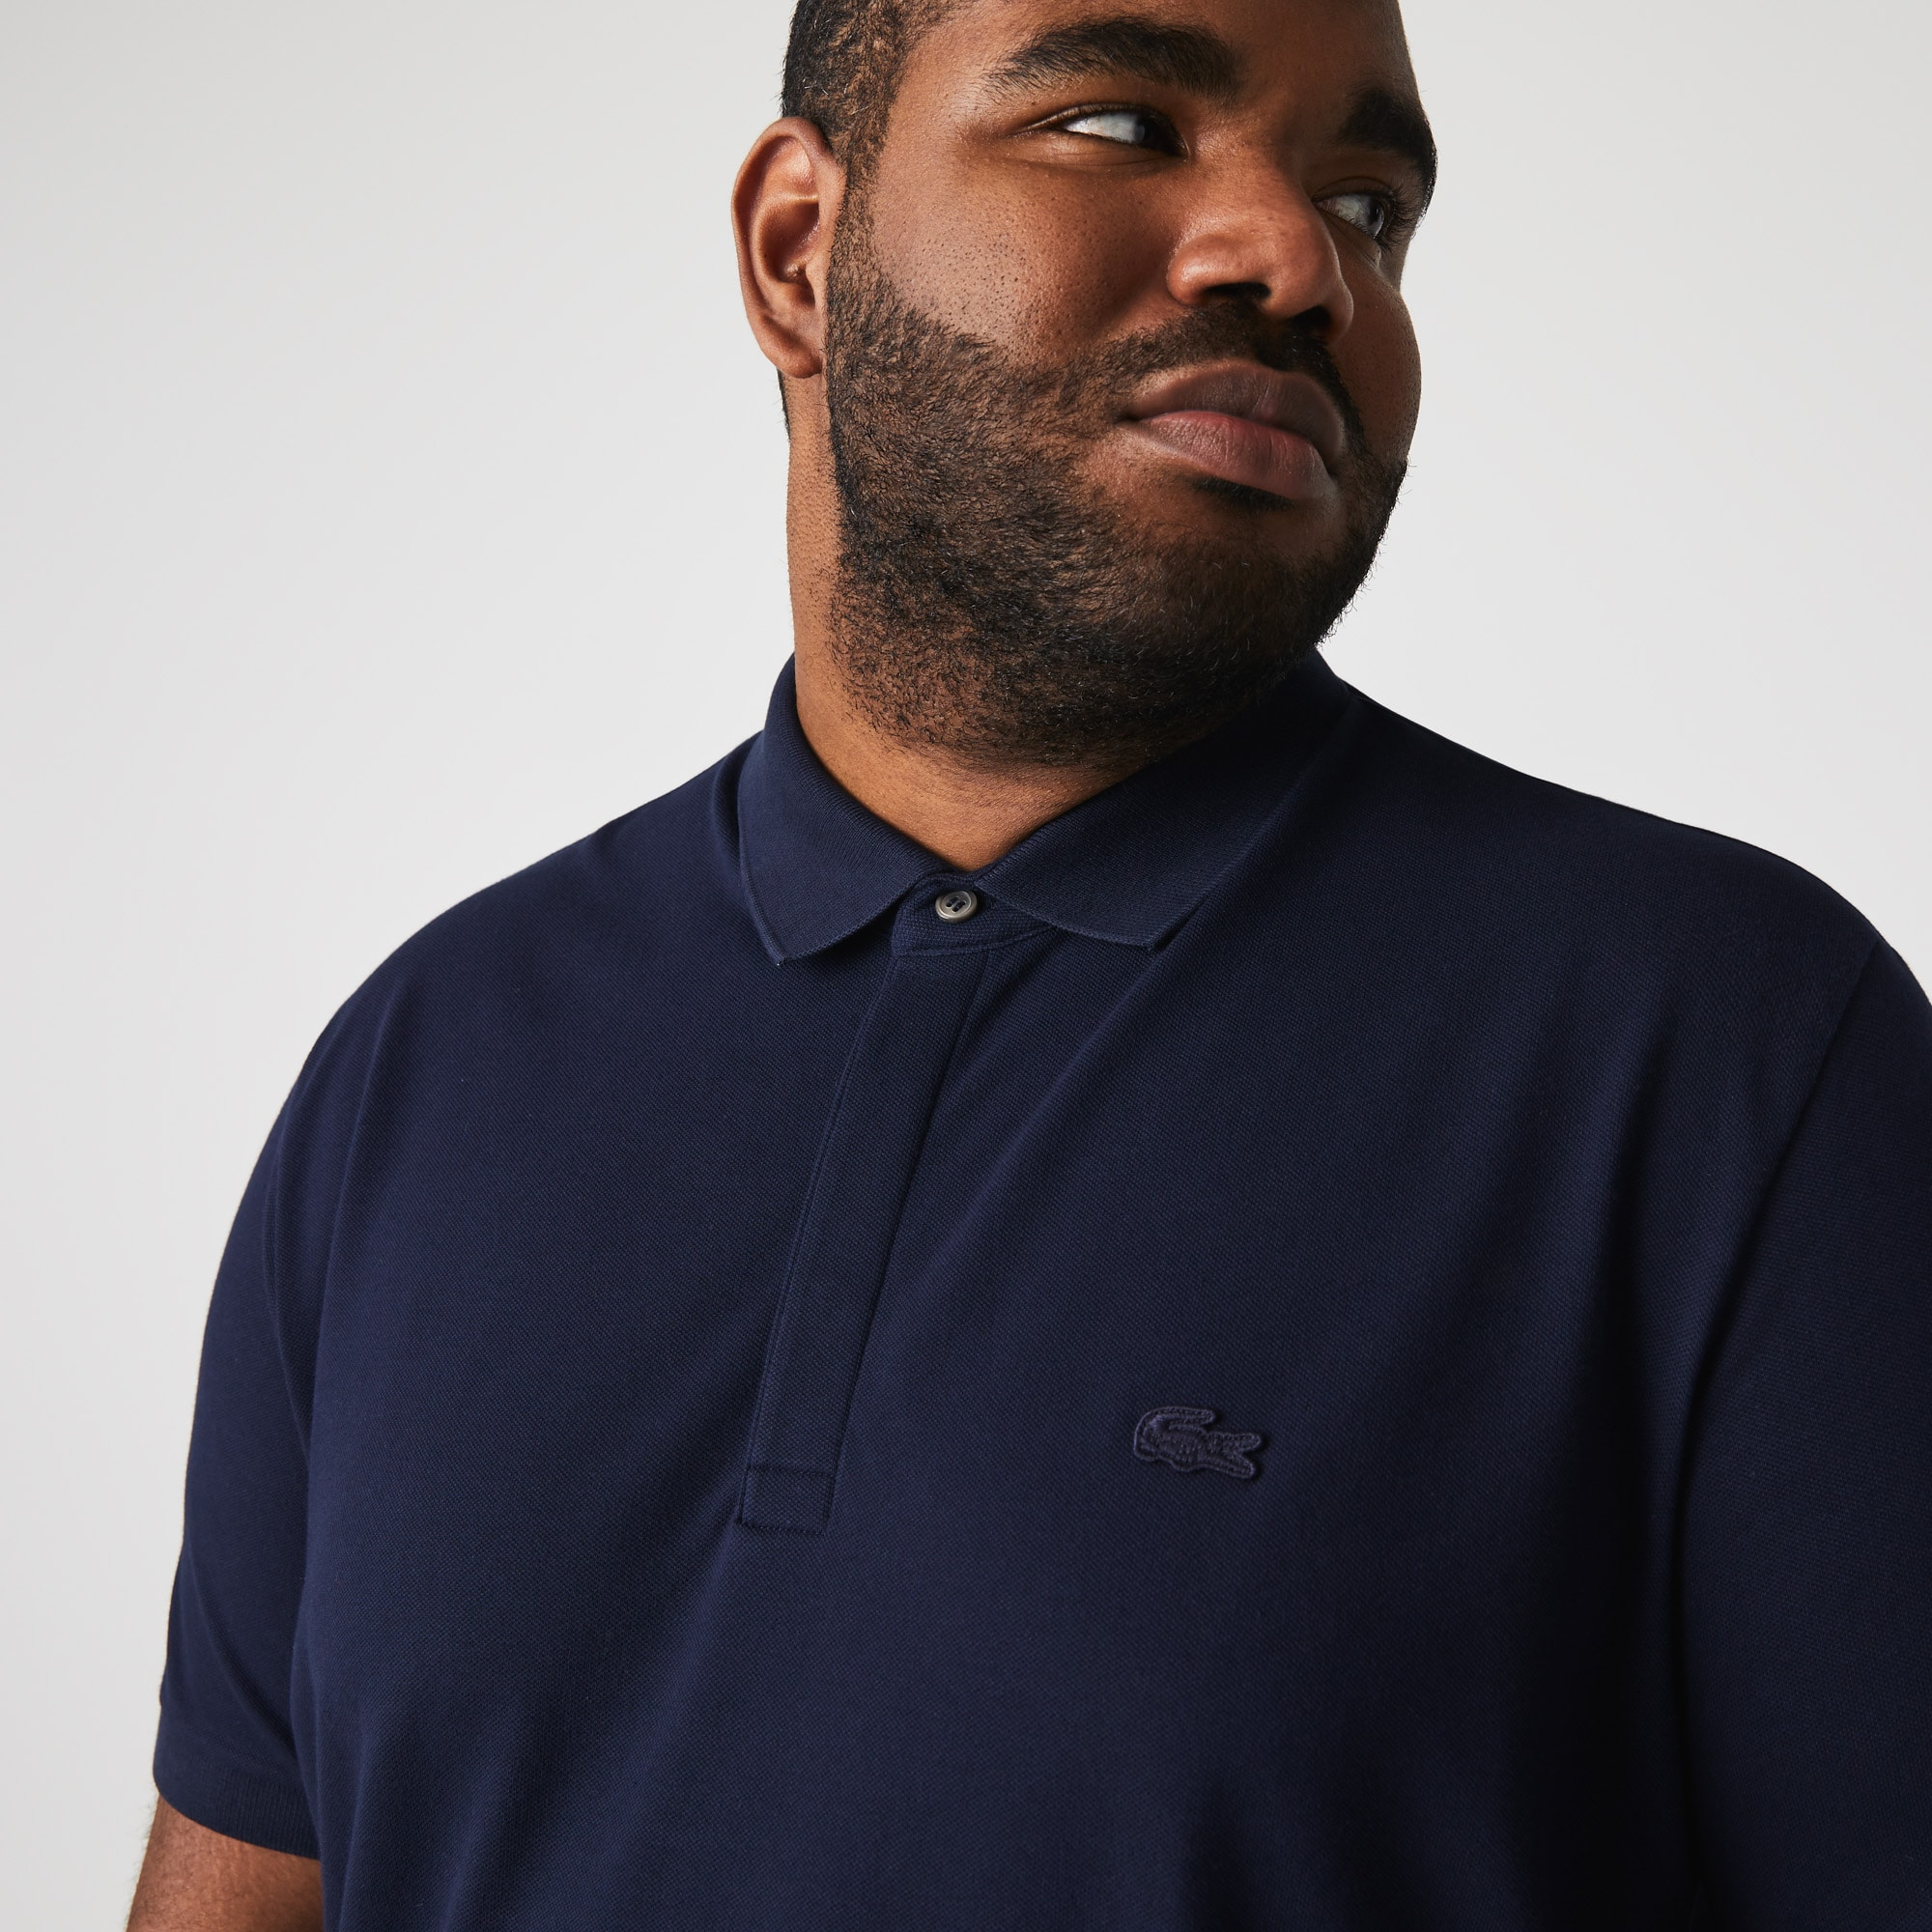 Men's Lacoste Paris Polo Shirt Regular Fit Stretch Cotton Piqué